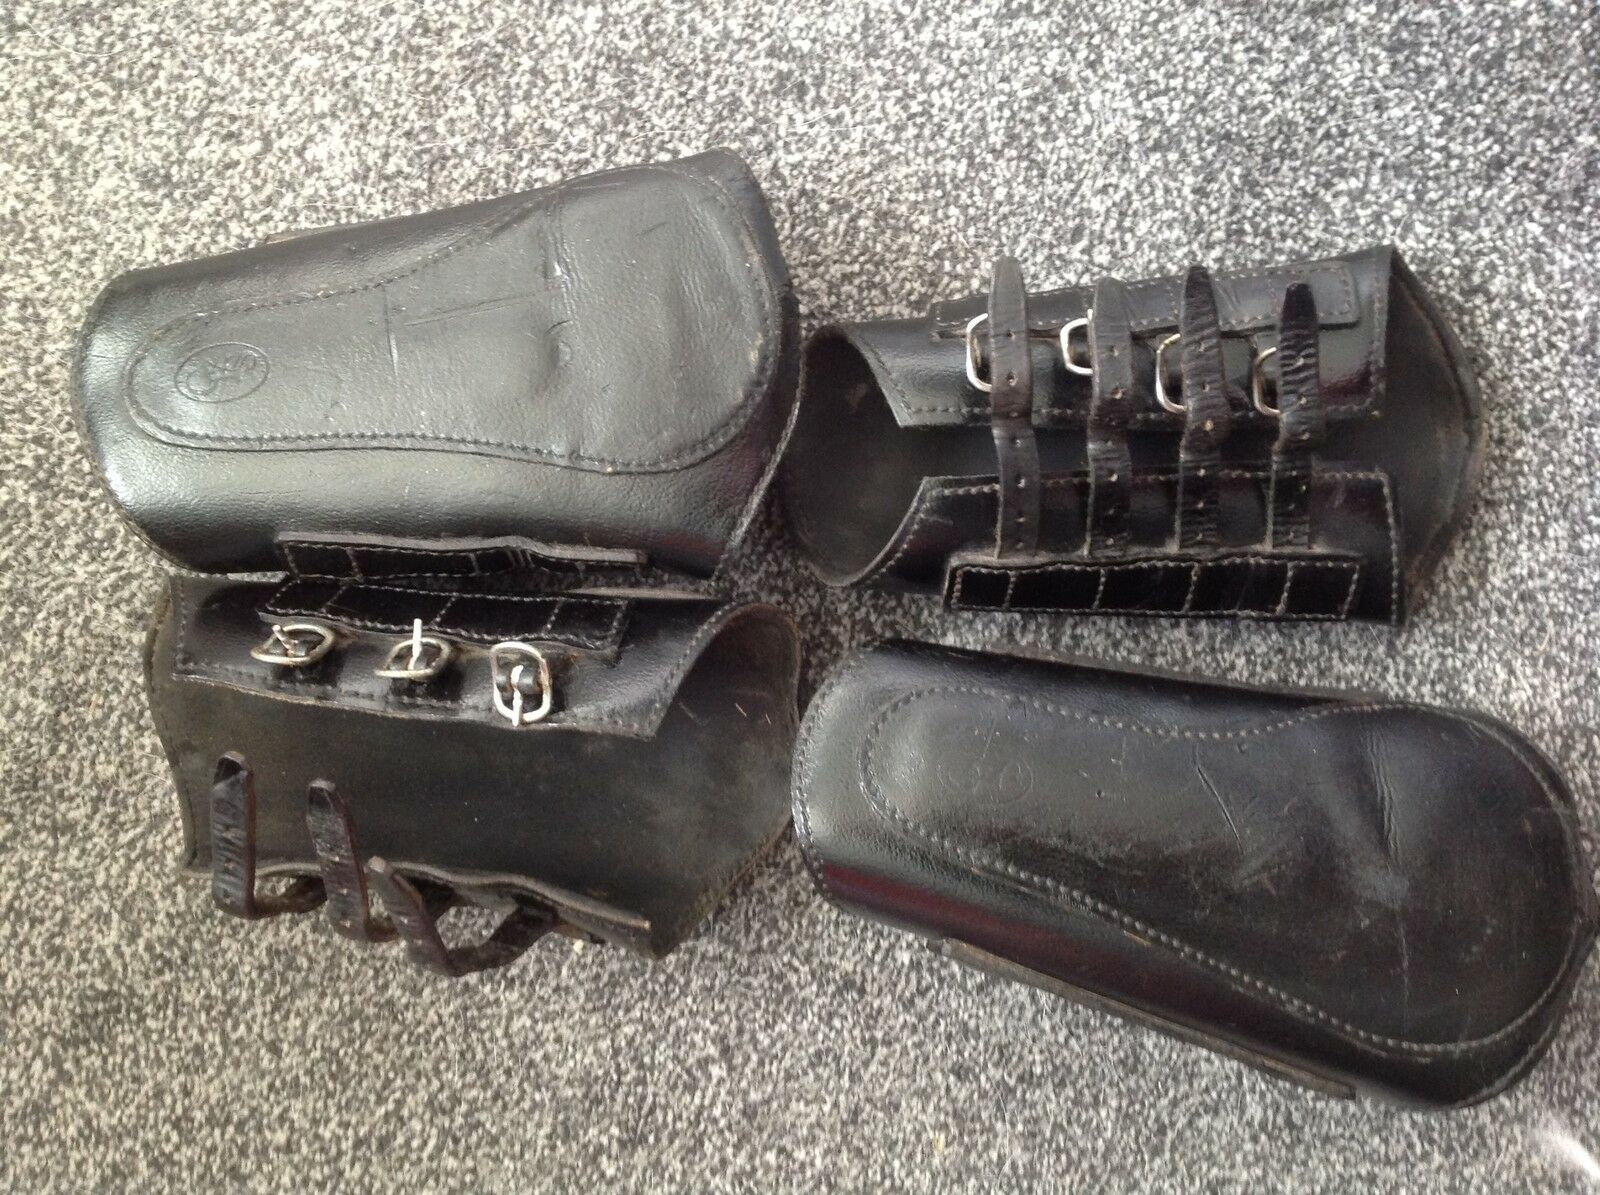 Full Set of GFS Leather Brushing Boots - Excellent Condition